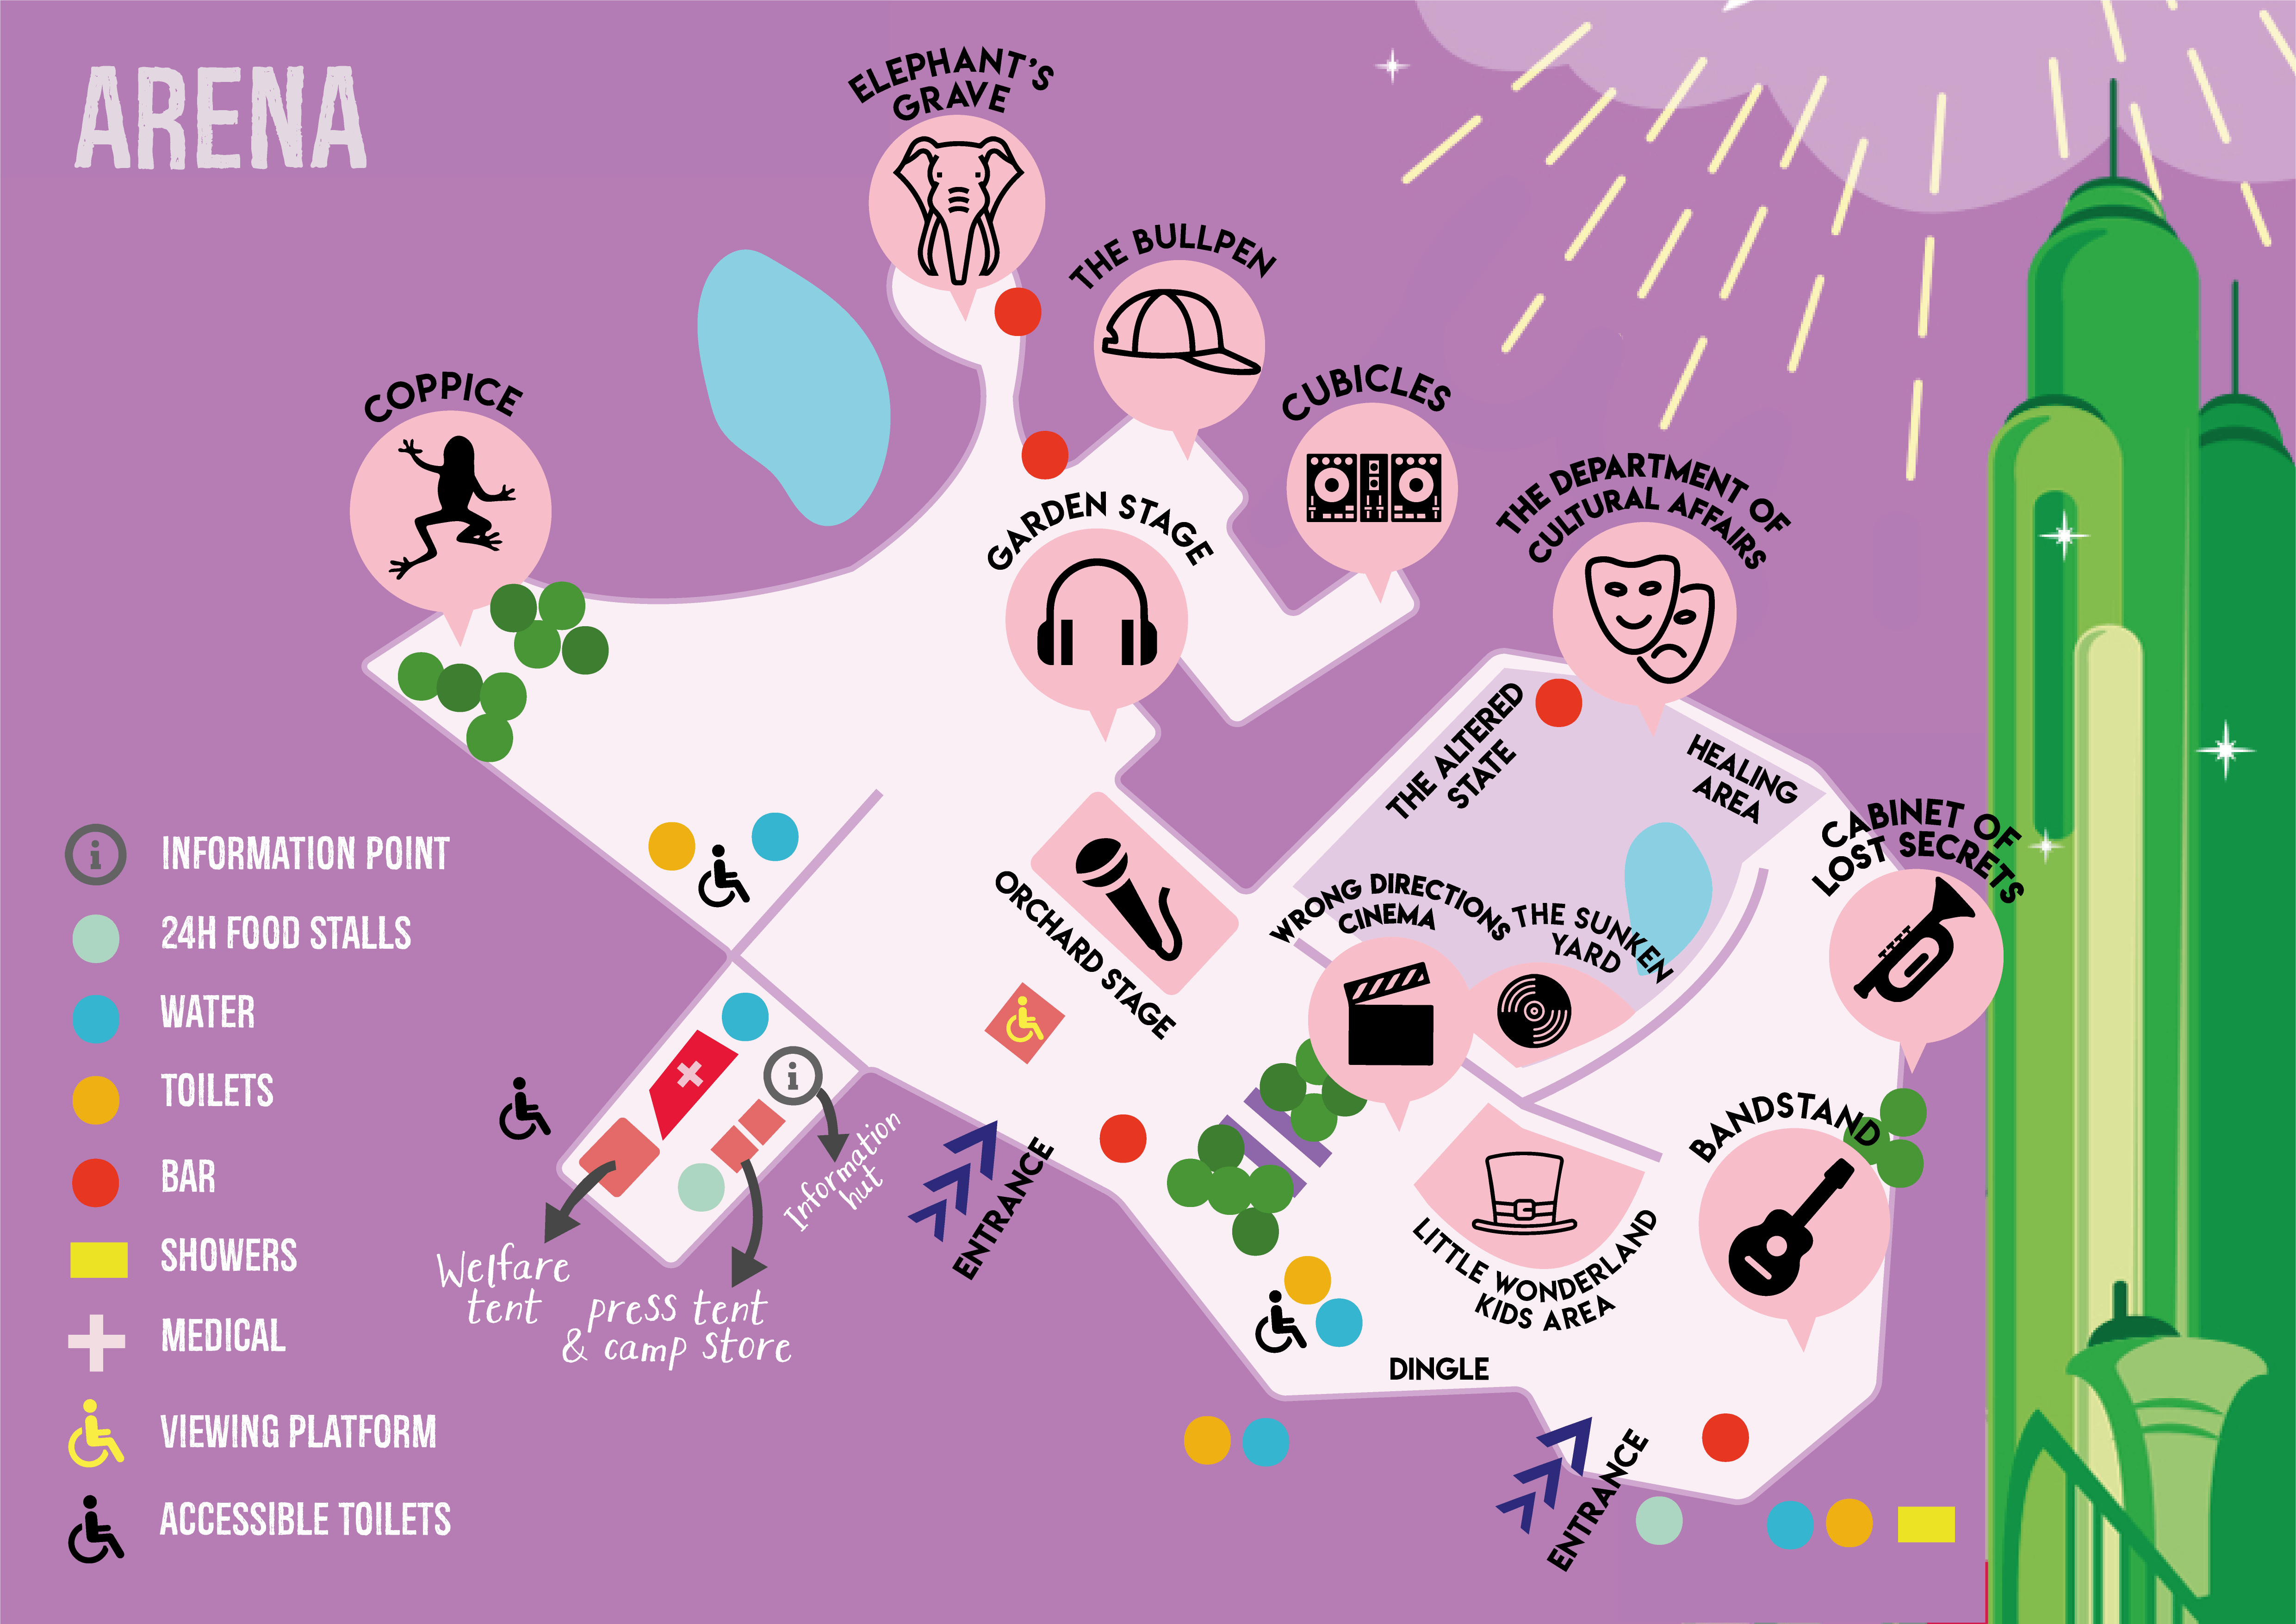 Arena map of Nozstock 2019